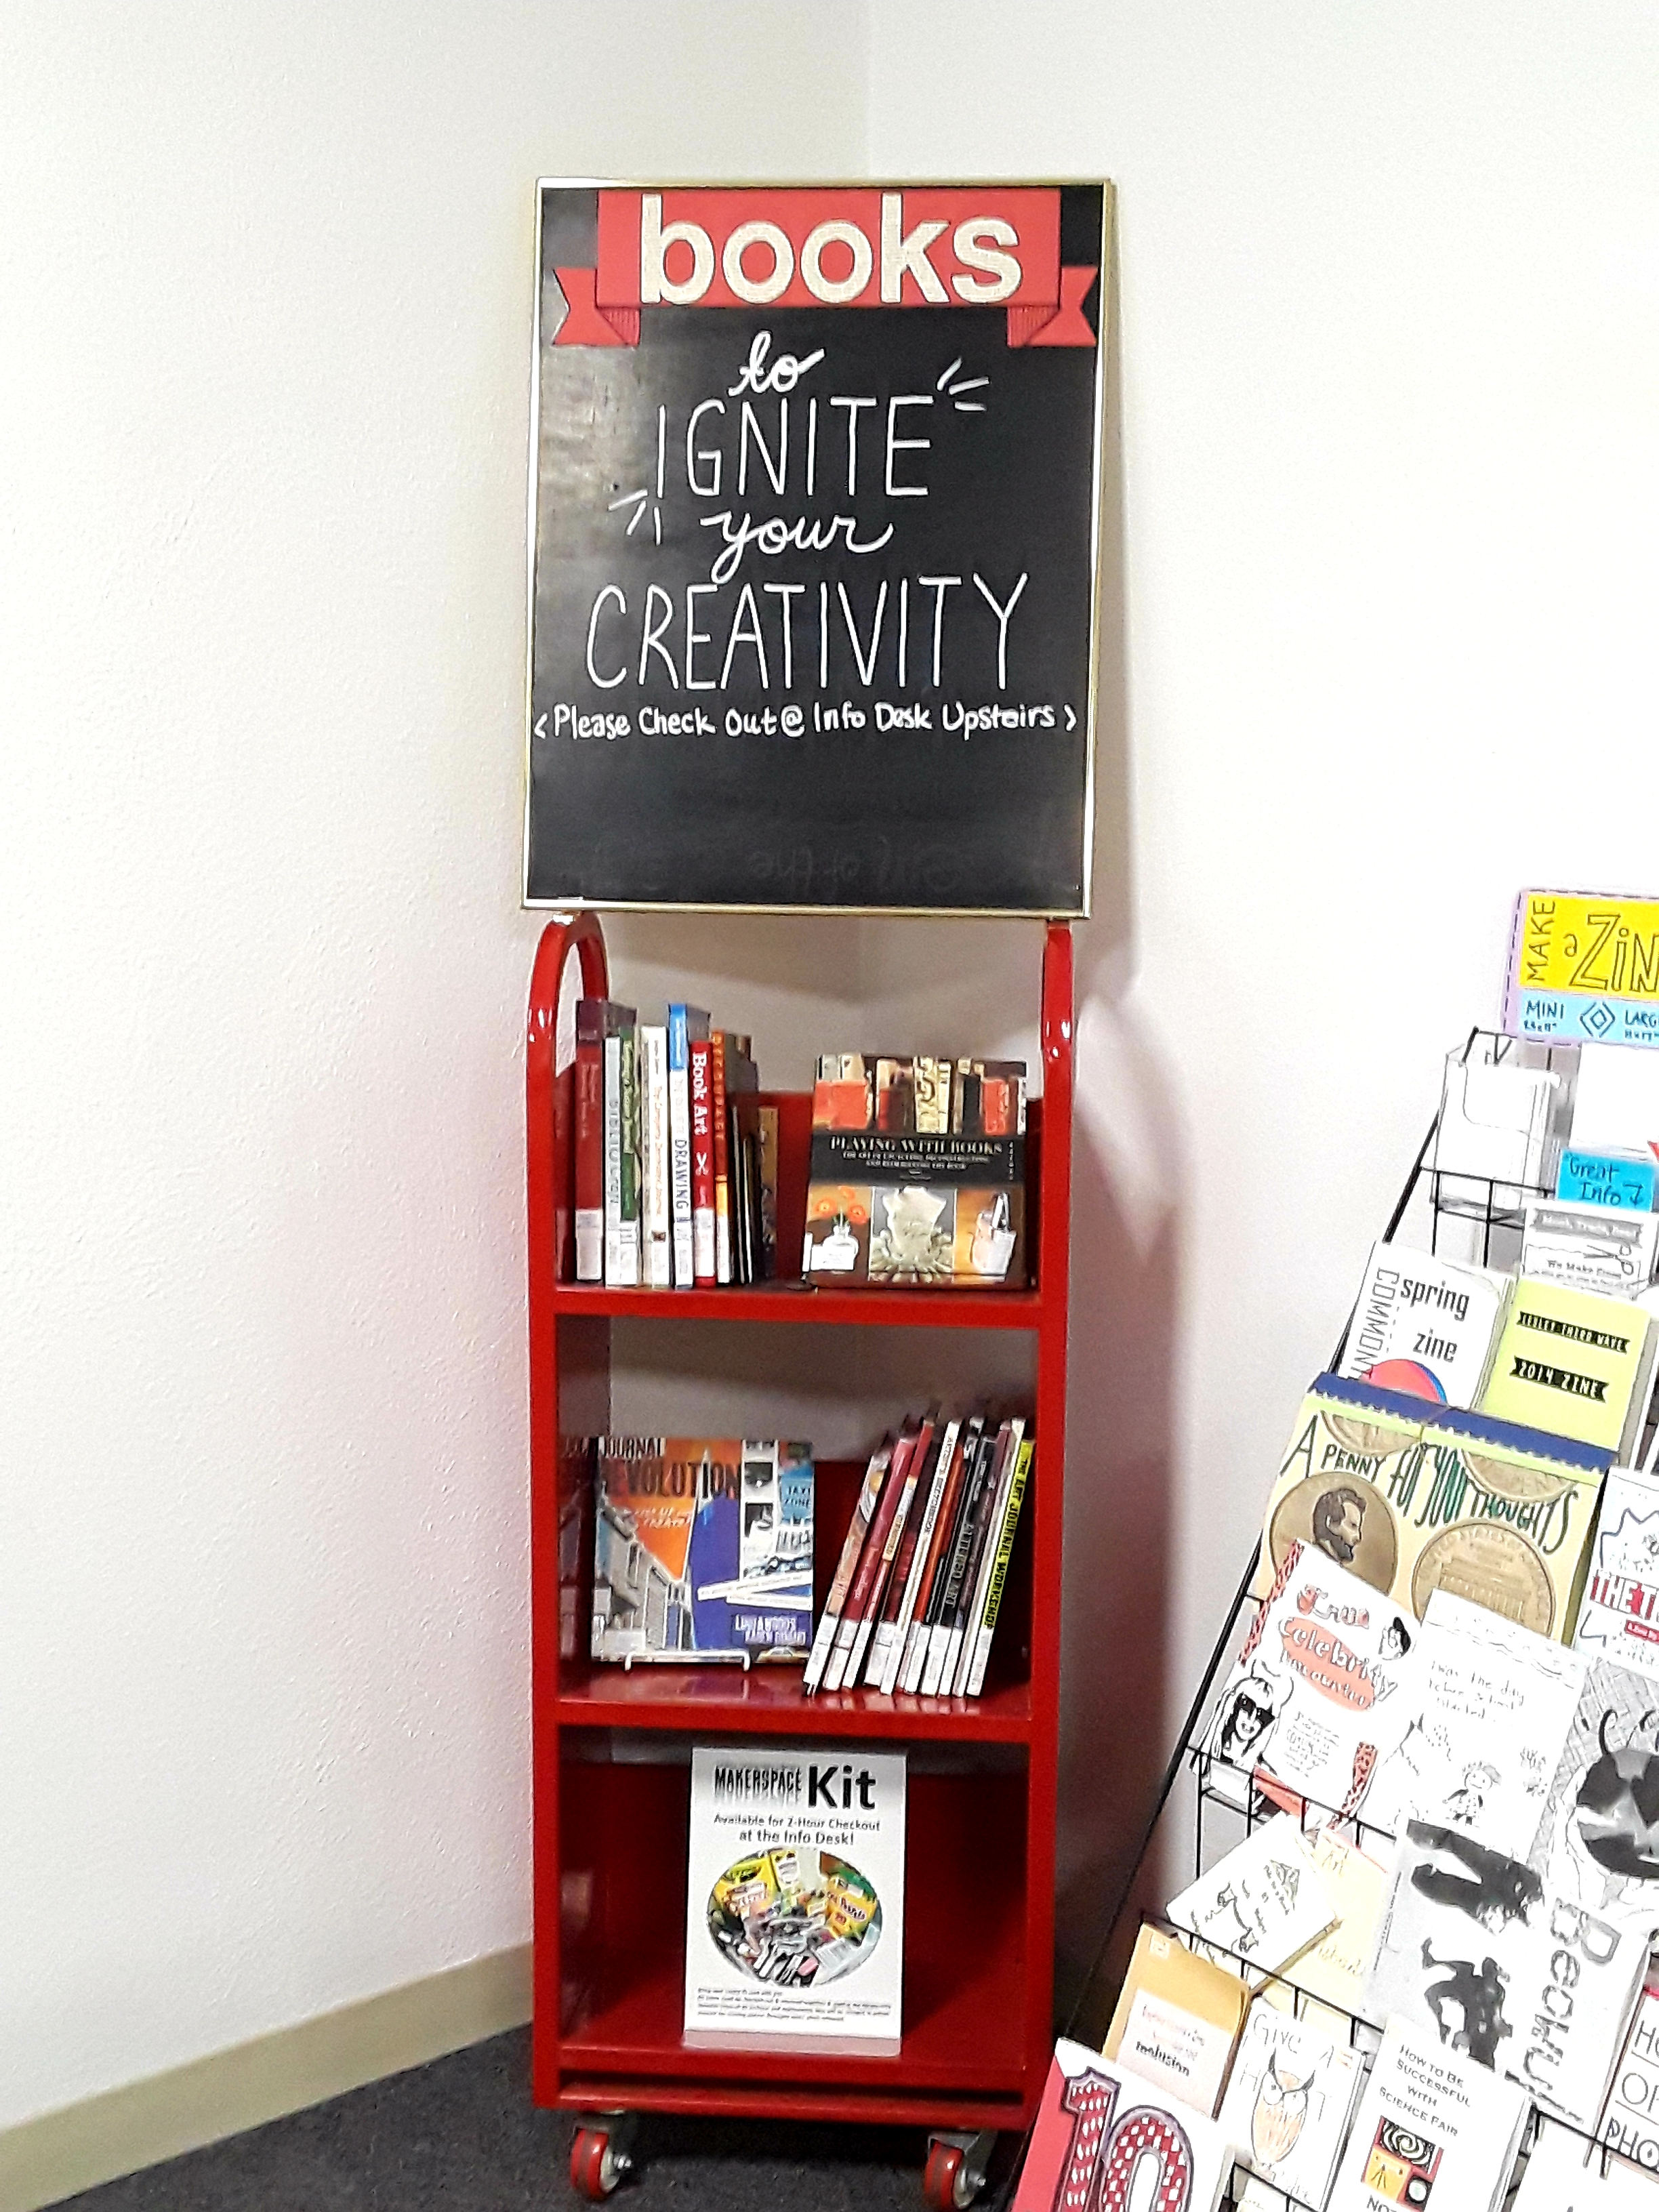 red book cart with books and a sign